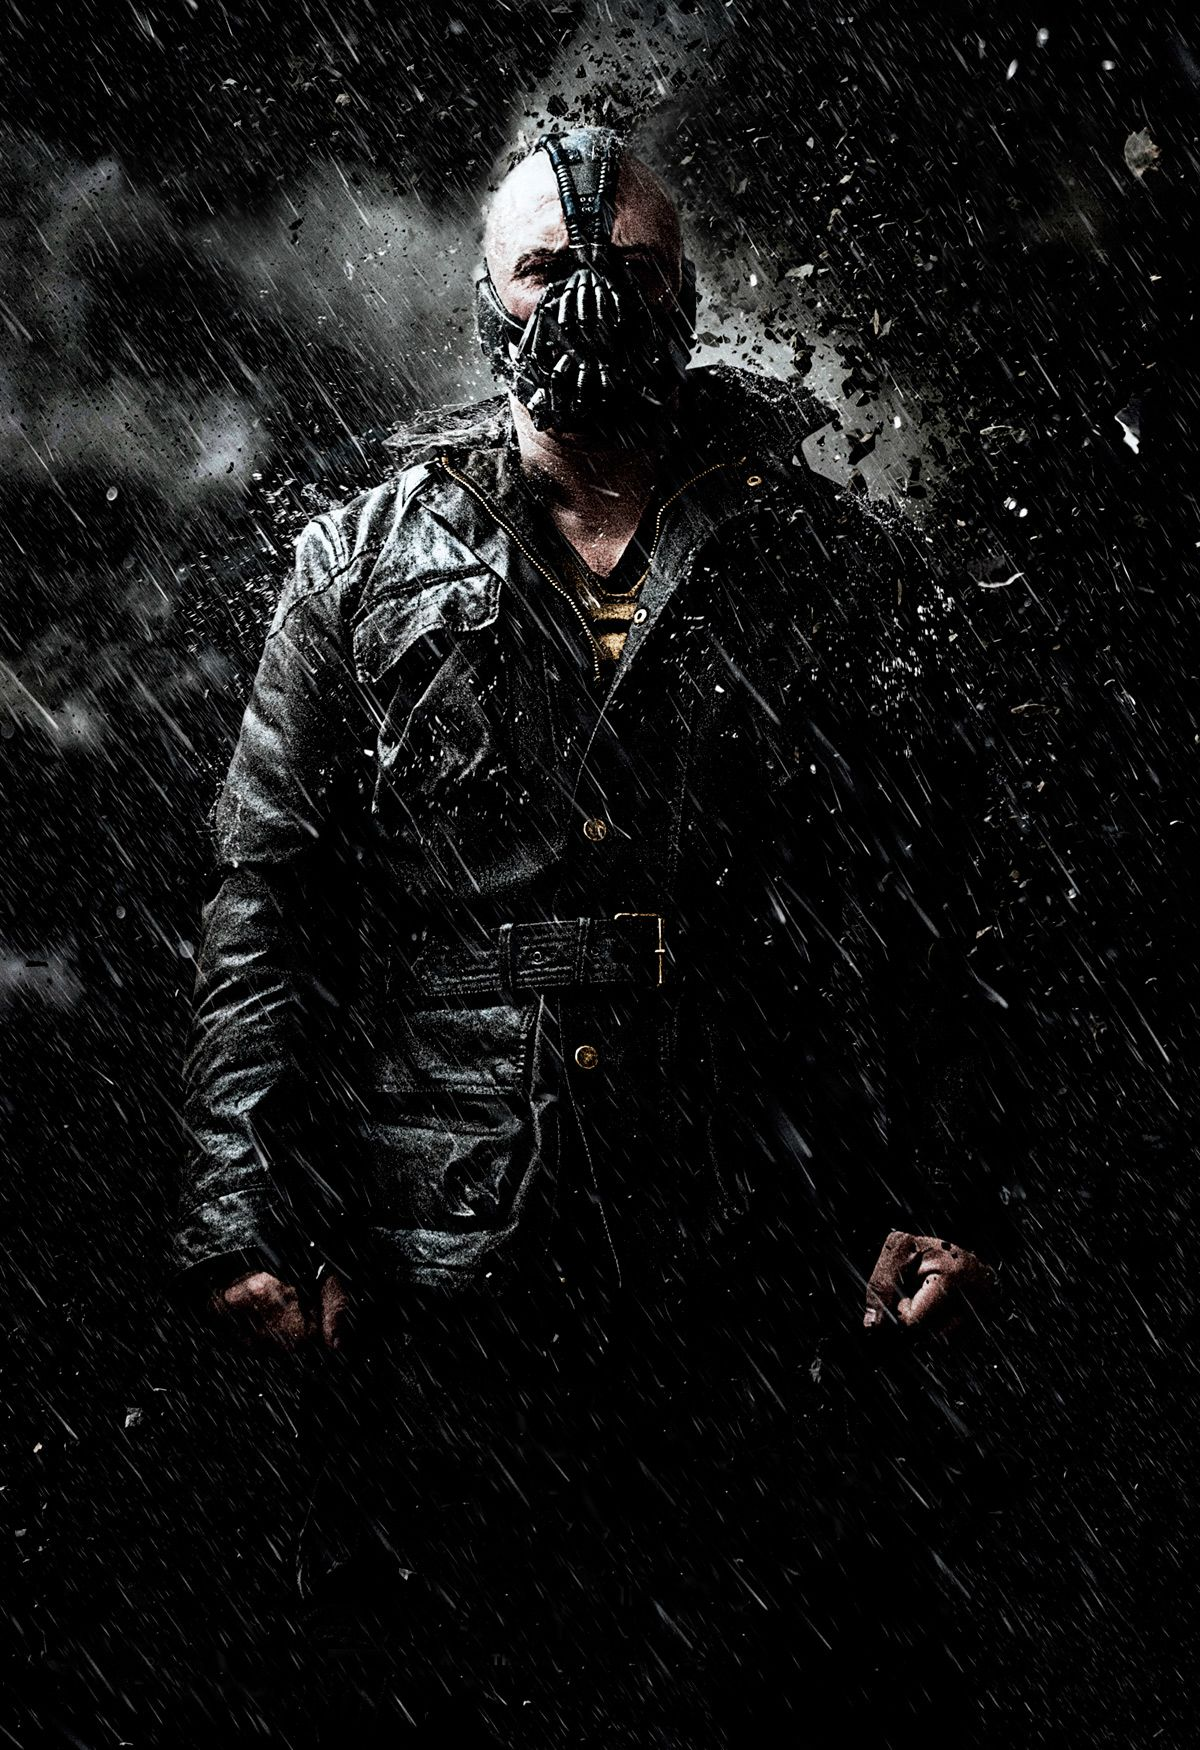 http://img2.wikia.nocookie.net/__cb20120527000806/dcmovies/images/9/95/DKR_Bane2.jpg